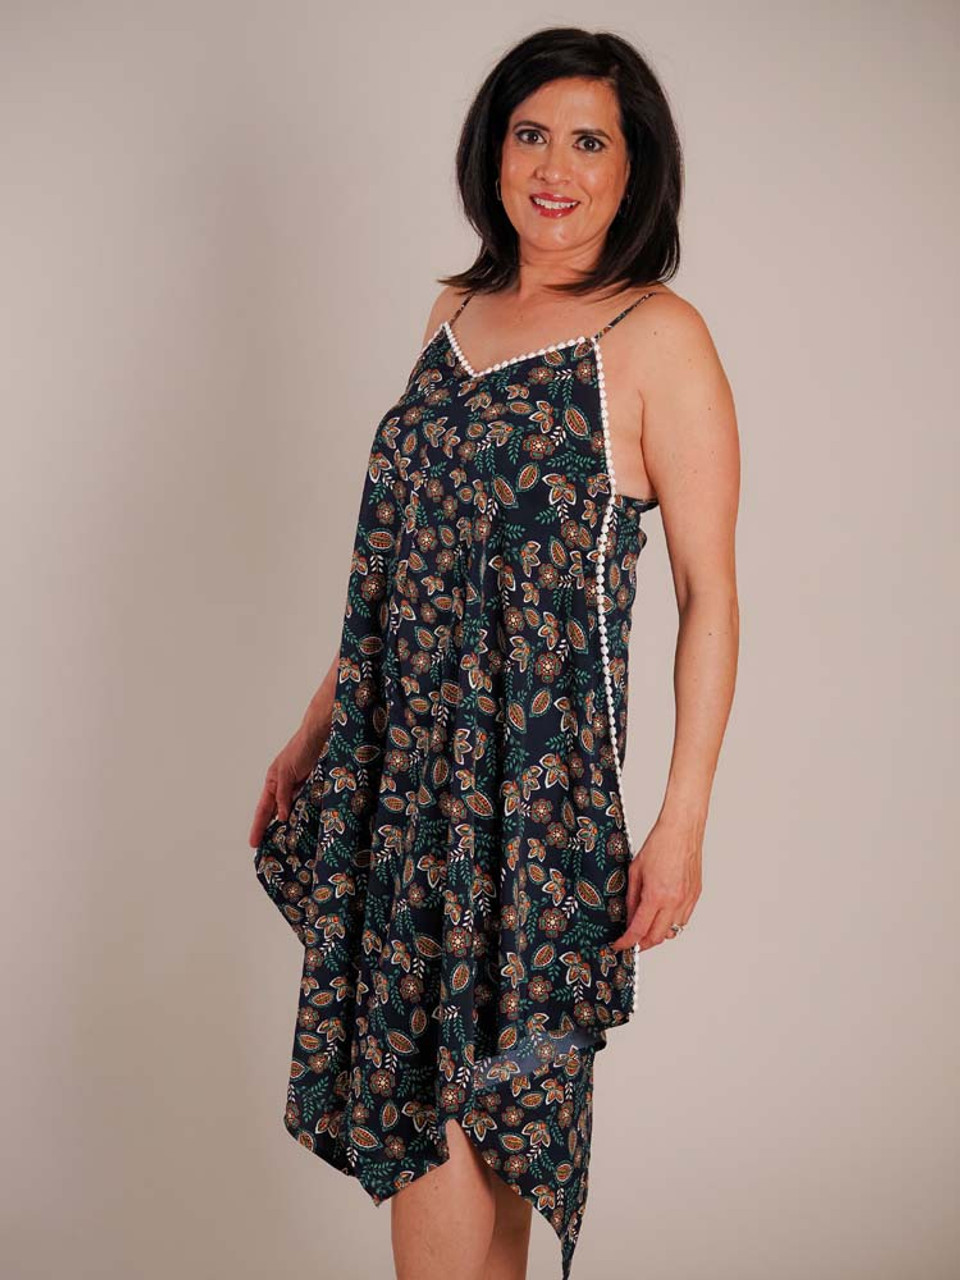 The material and design of this dress are flowy and flattering. Adjustable shoulder straps; v neck in front and back; white thread bead trim; asymetrical handkerchief shaped hem at bottom